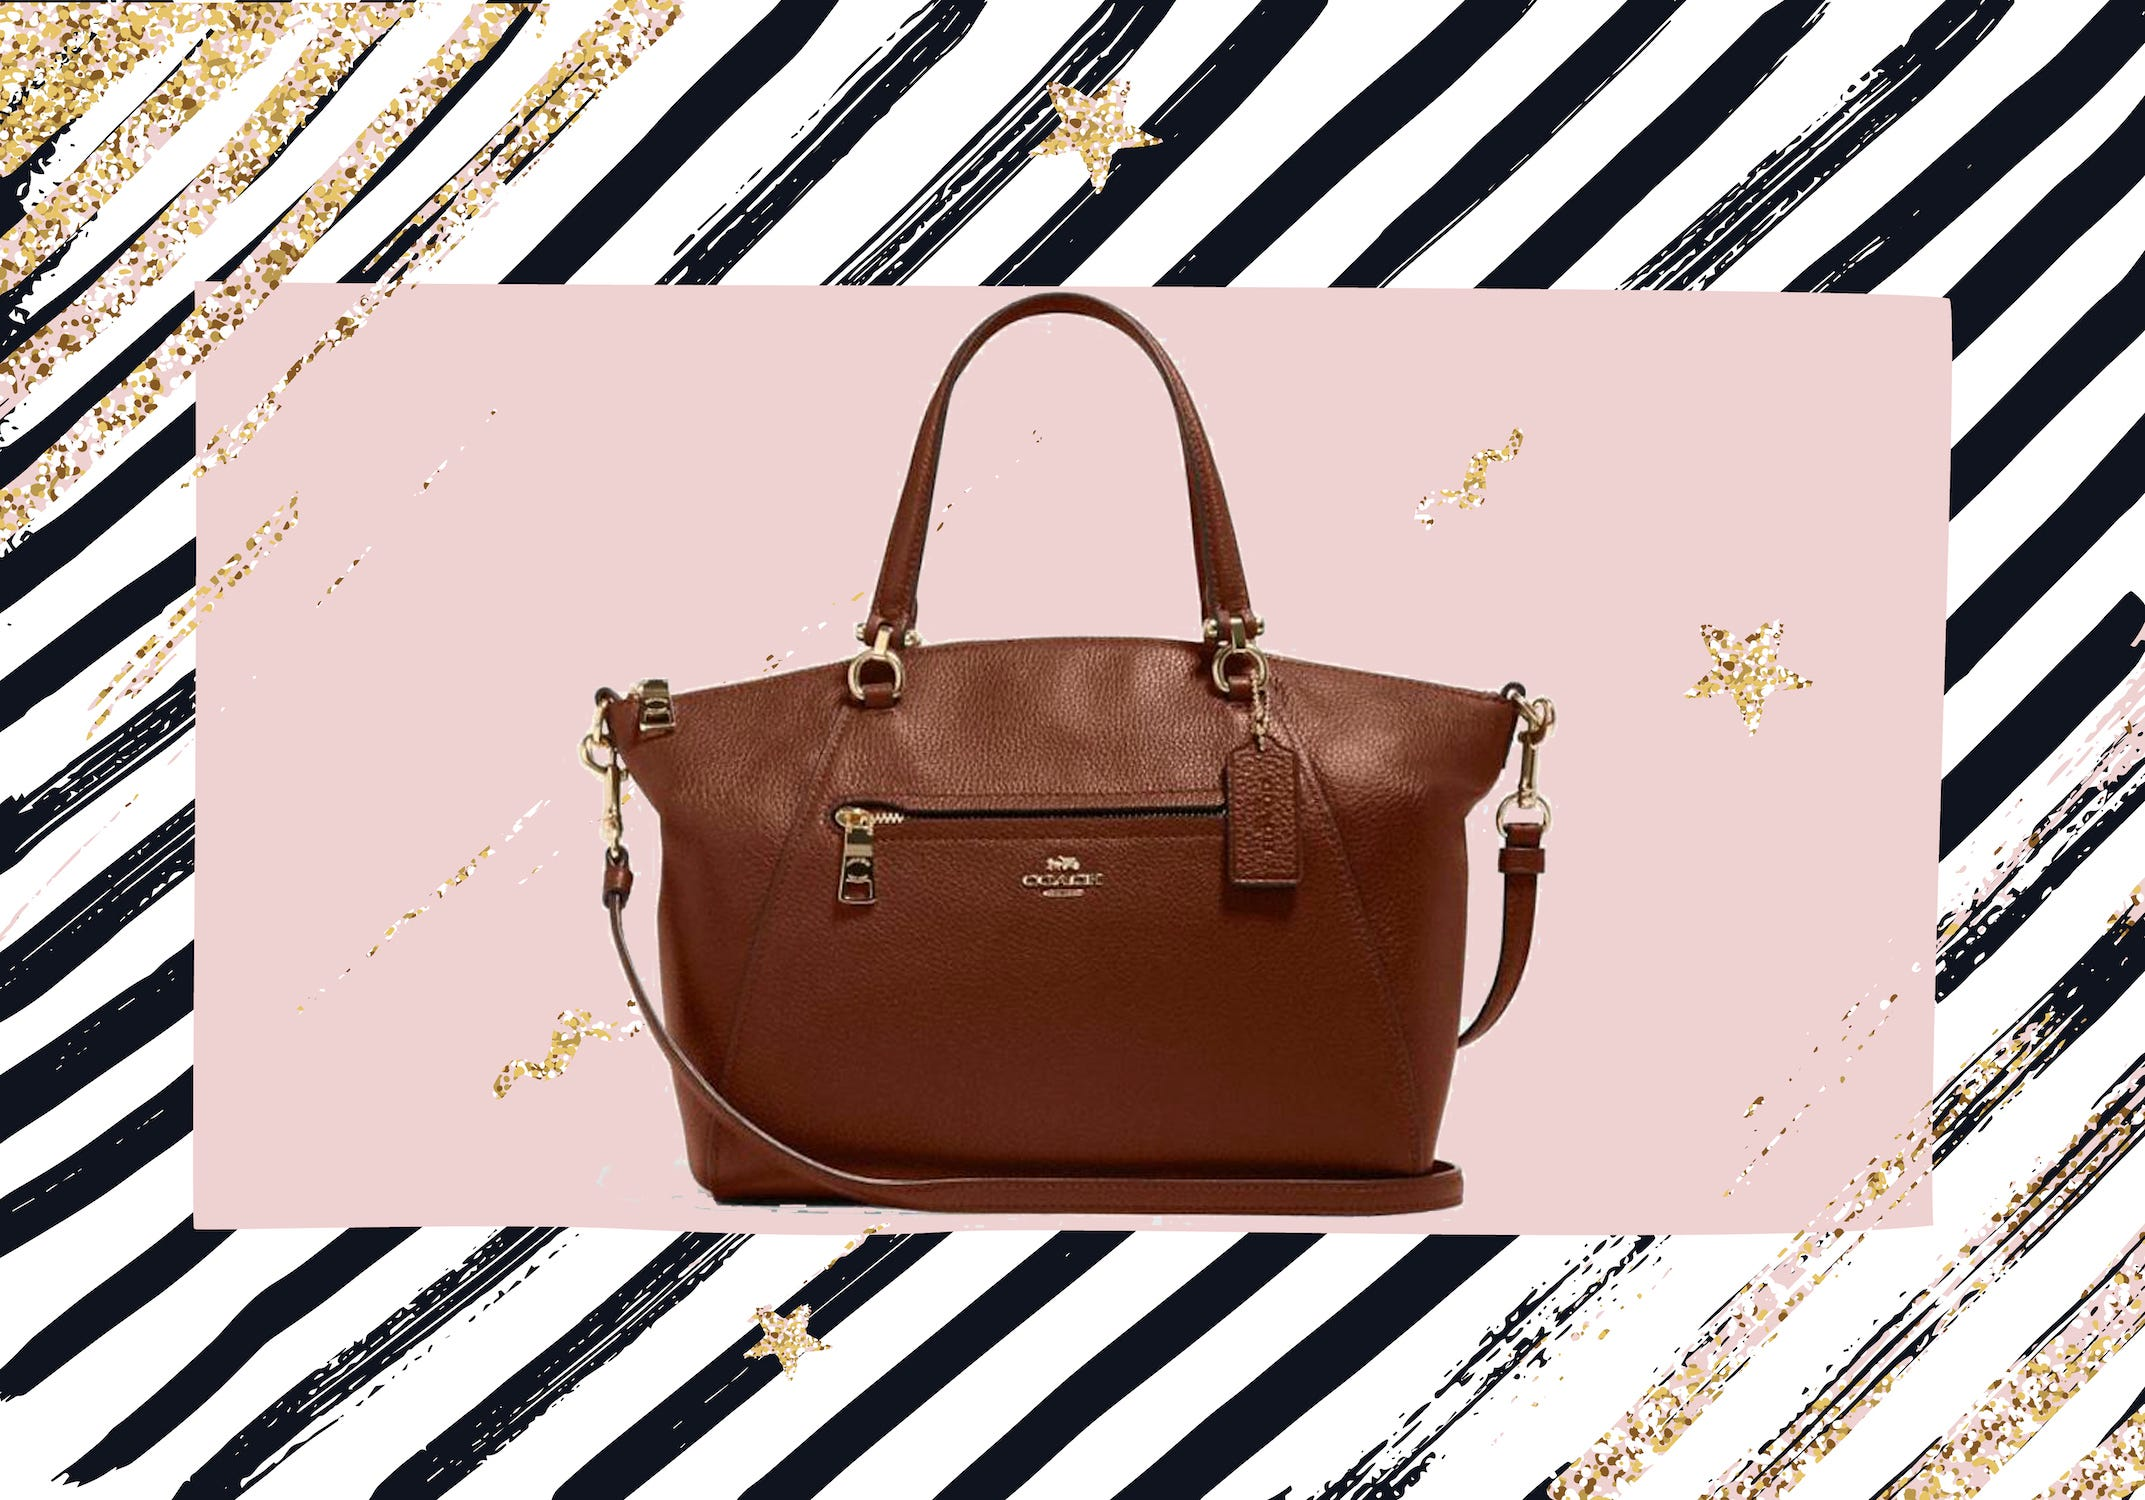 You can get Coach totes and satchels for more than half off right now